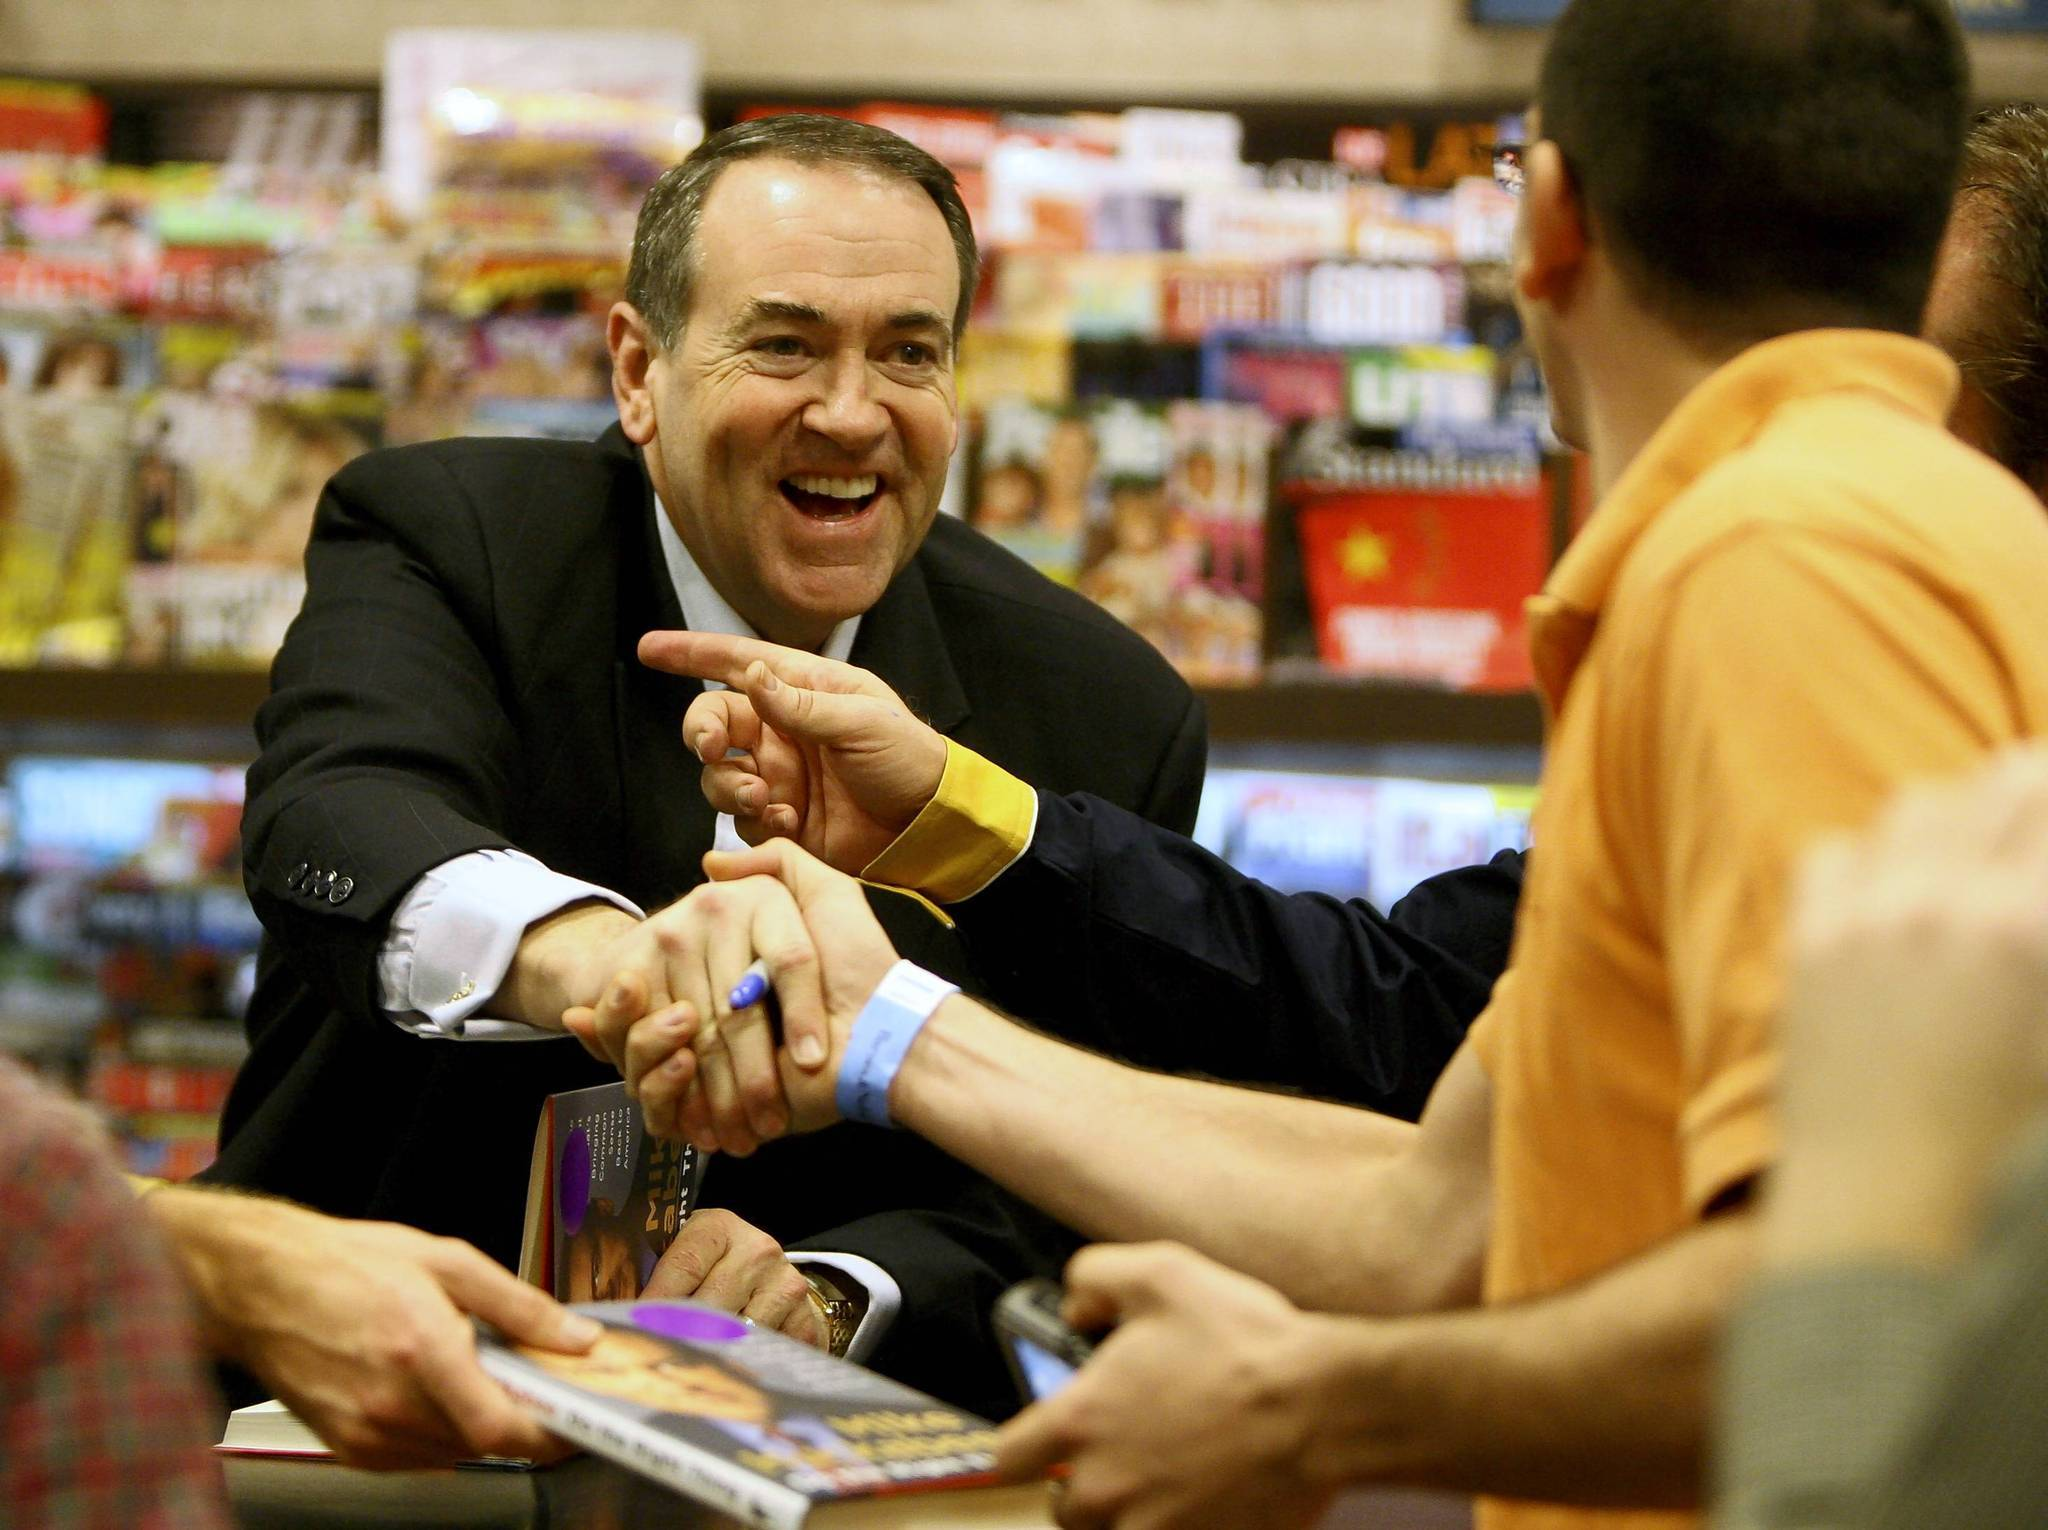 Mike Huckabee greets a fan during his book signing at the Barnes & Noble at Colonial Plaza in Orlando on Dec. 8, 2008.